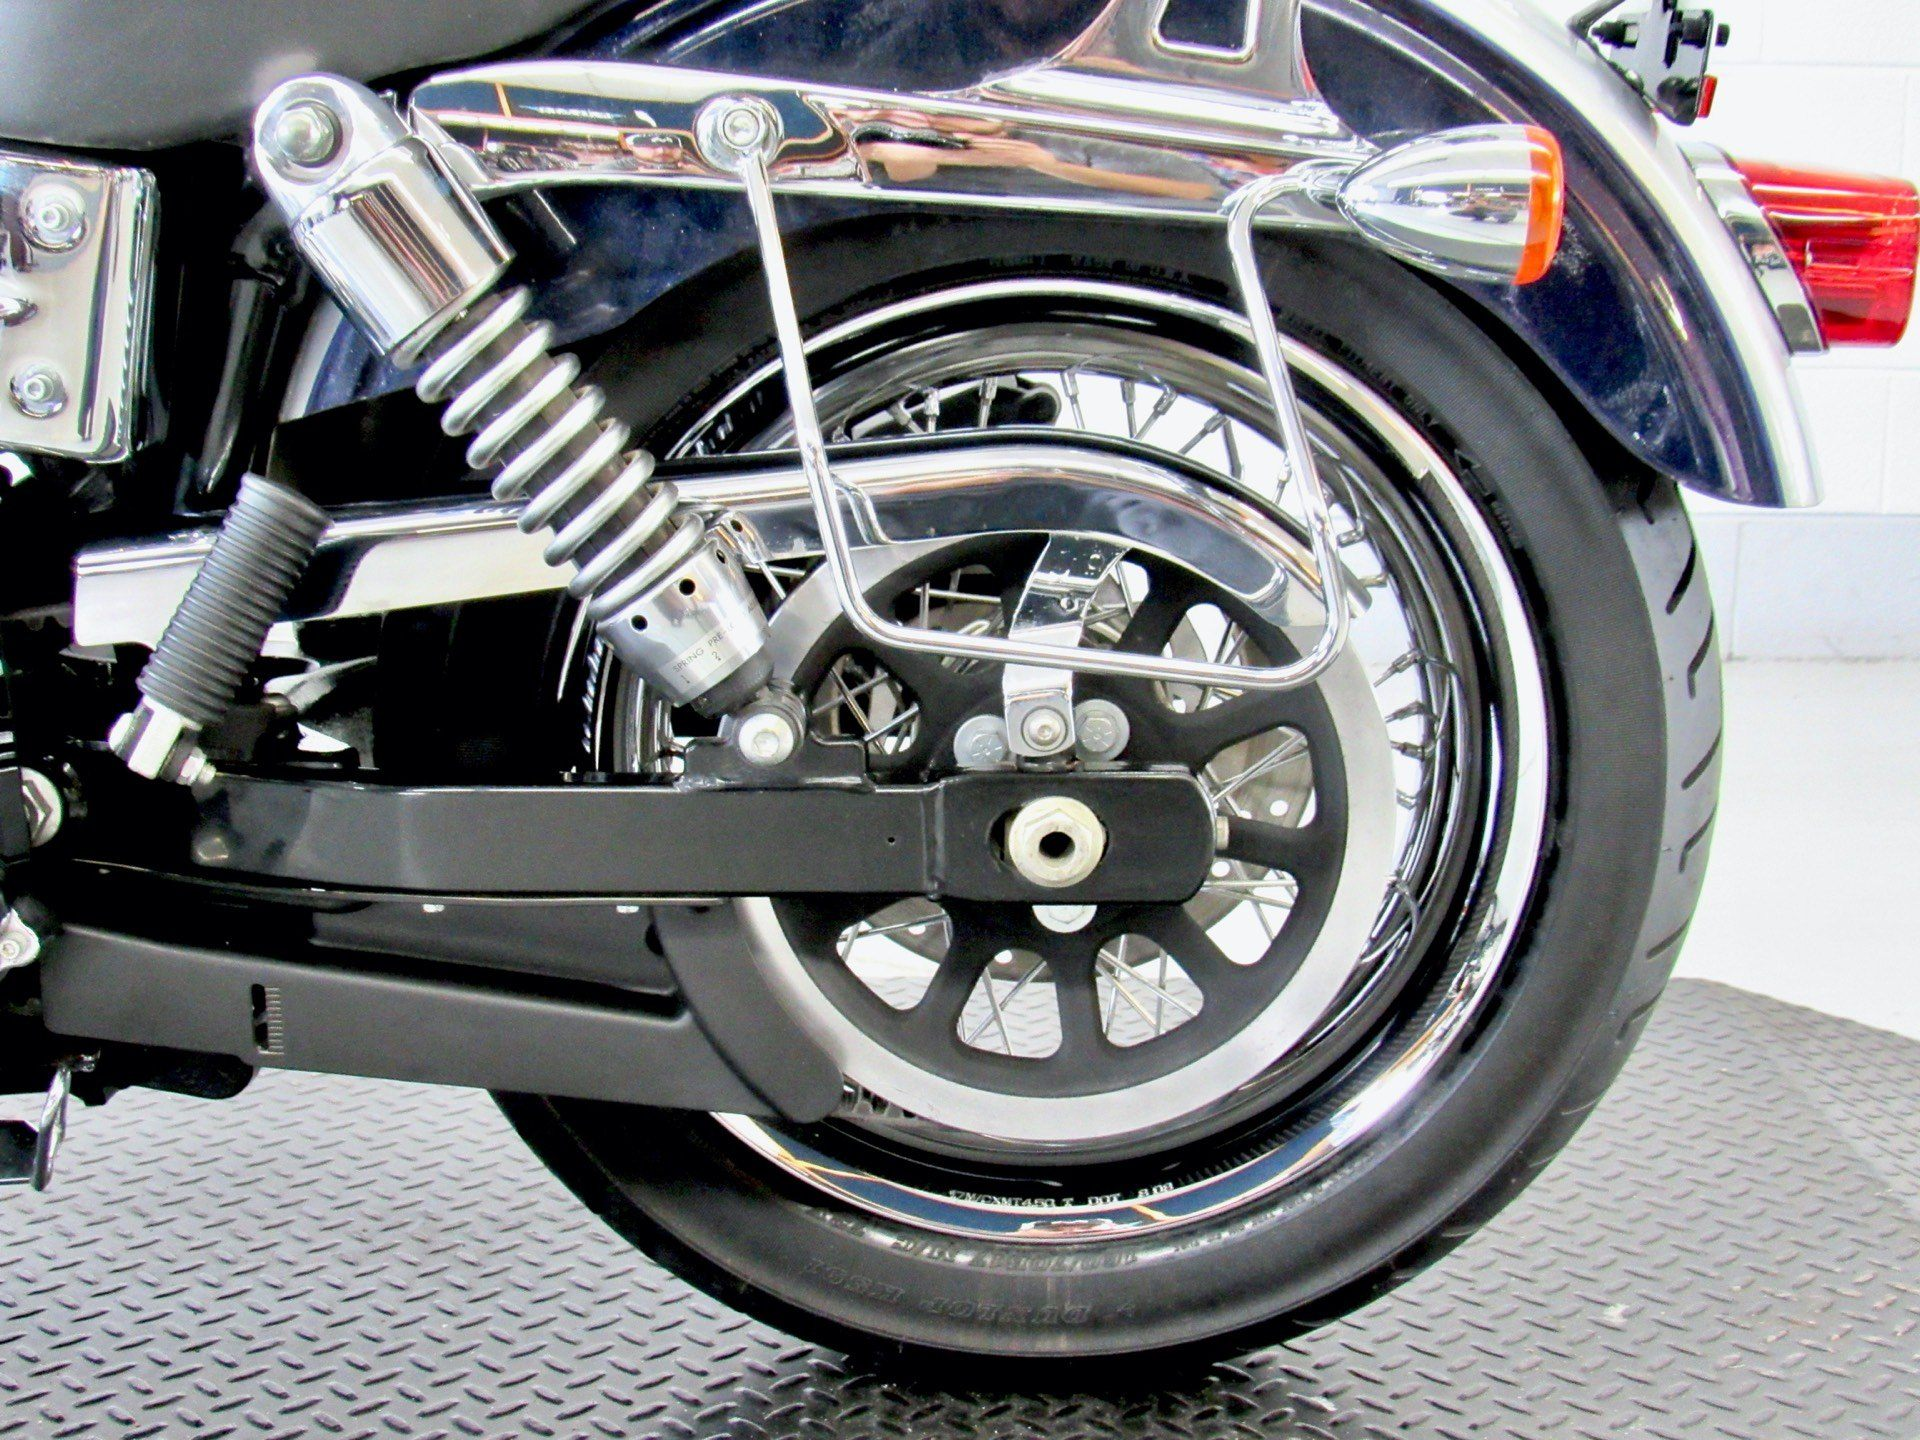 2009 Harley-Davidson Dyna® Low Rider® in Fredericksburg, Virginia - Photo 22